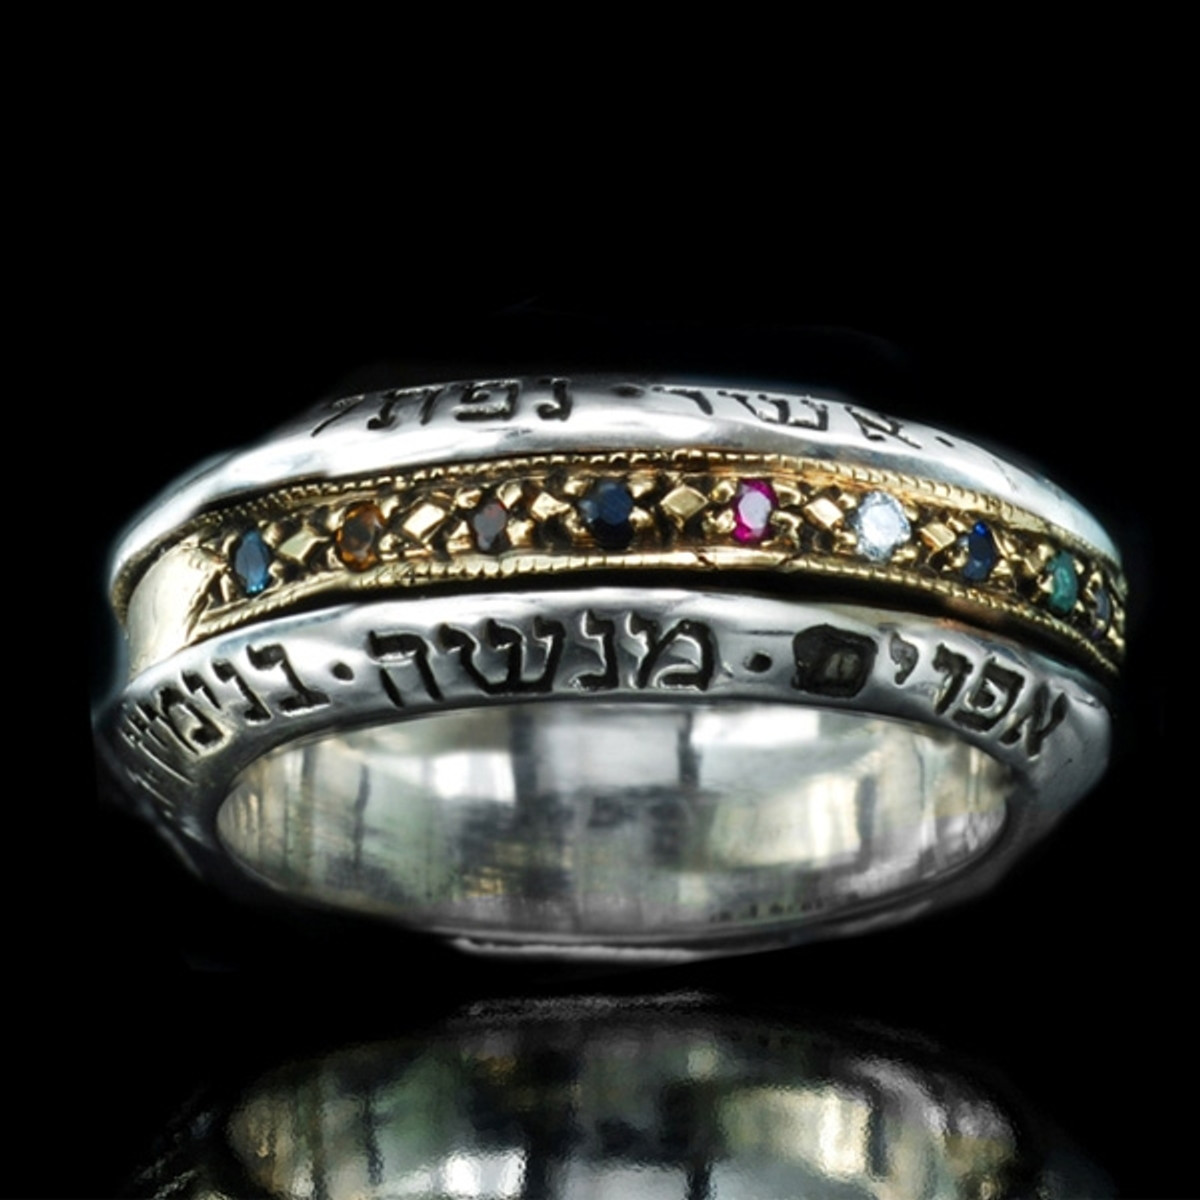 12 Tribes Hoshen Ring -Gold & Silver Spinner Ring by HaAri